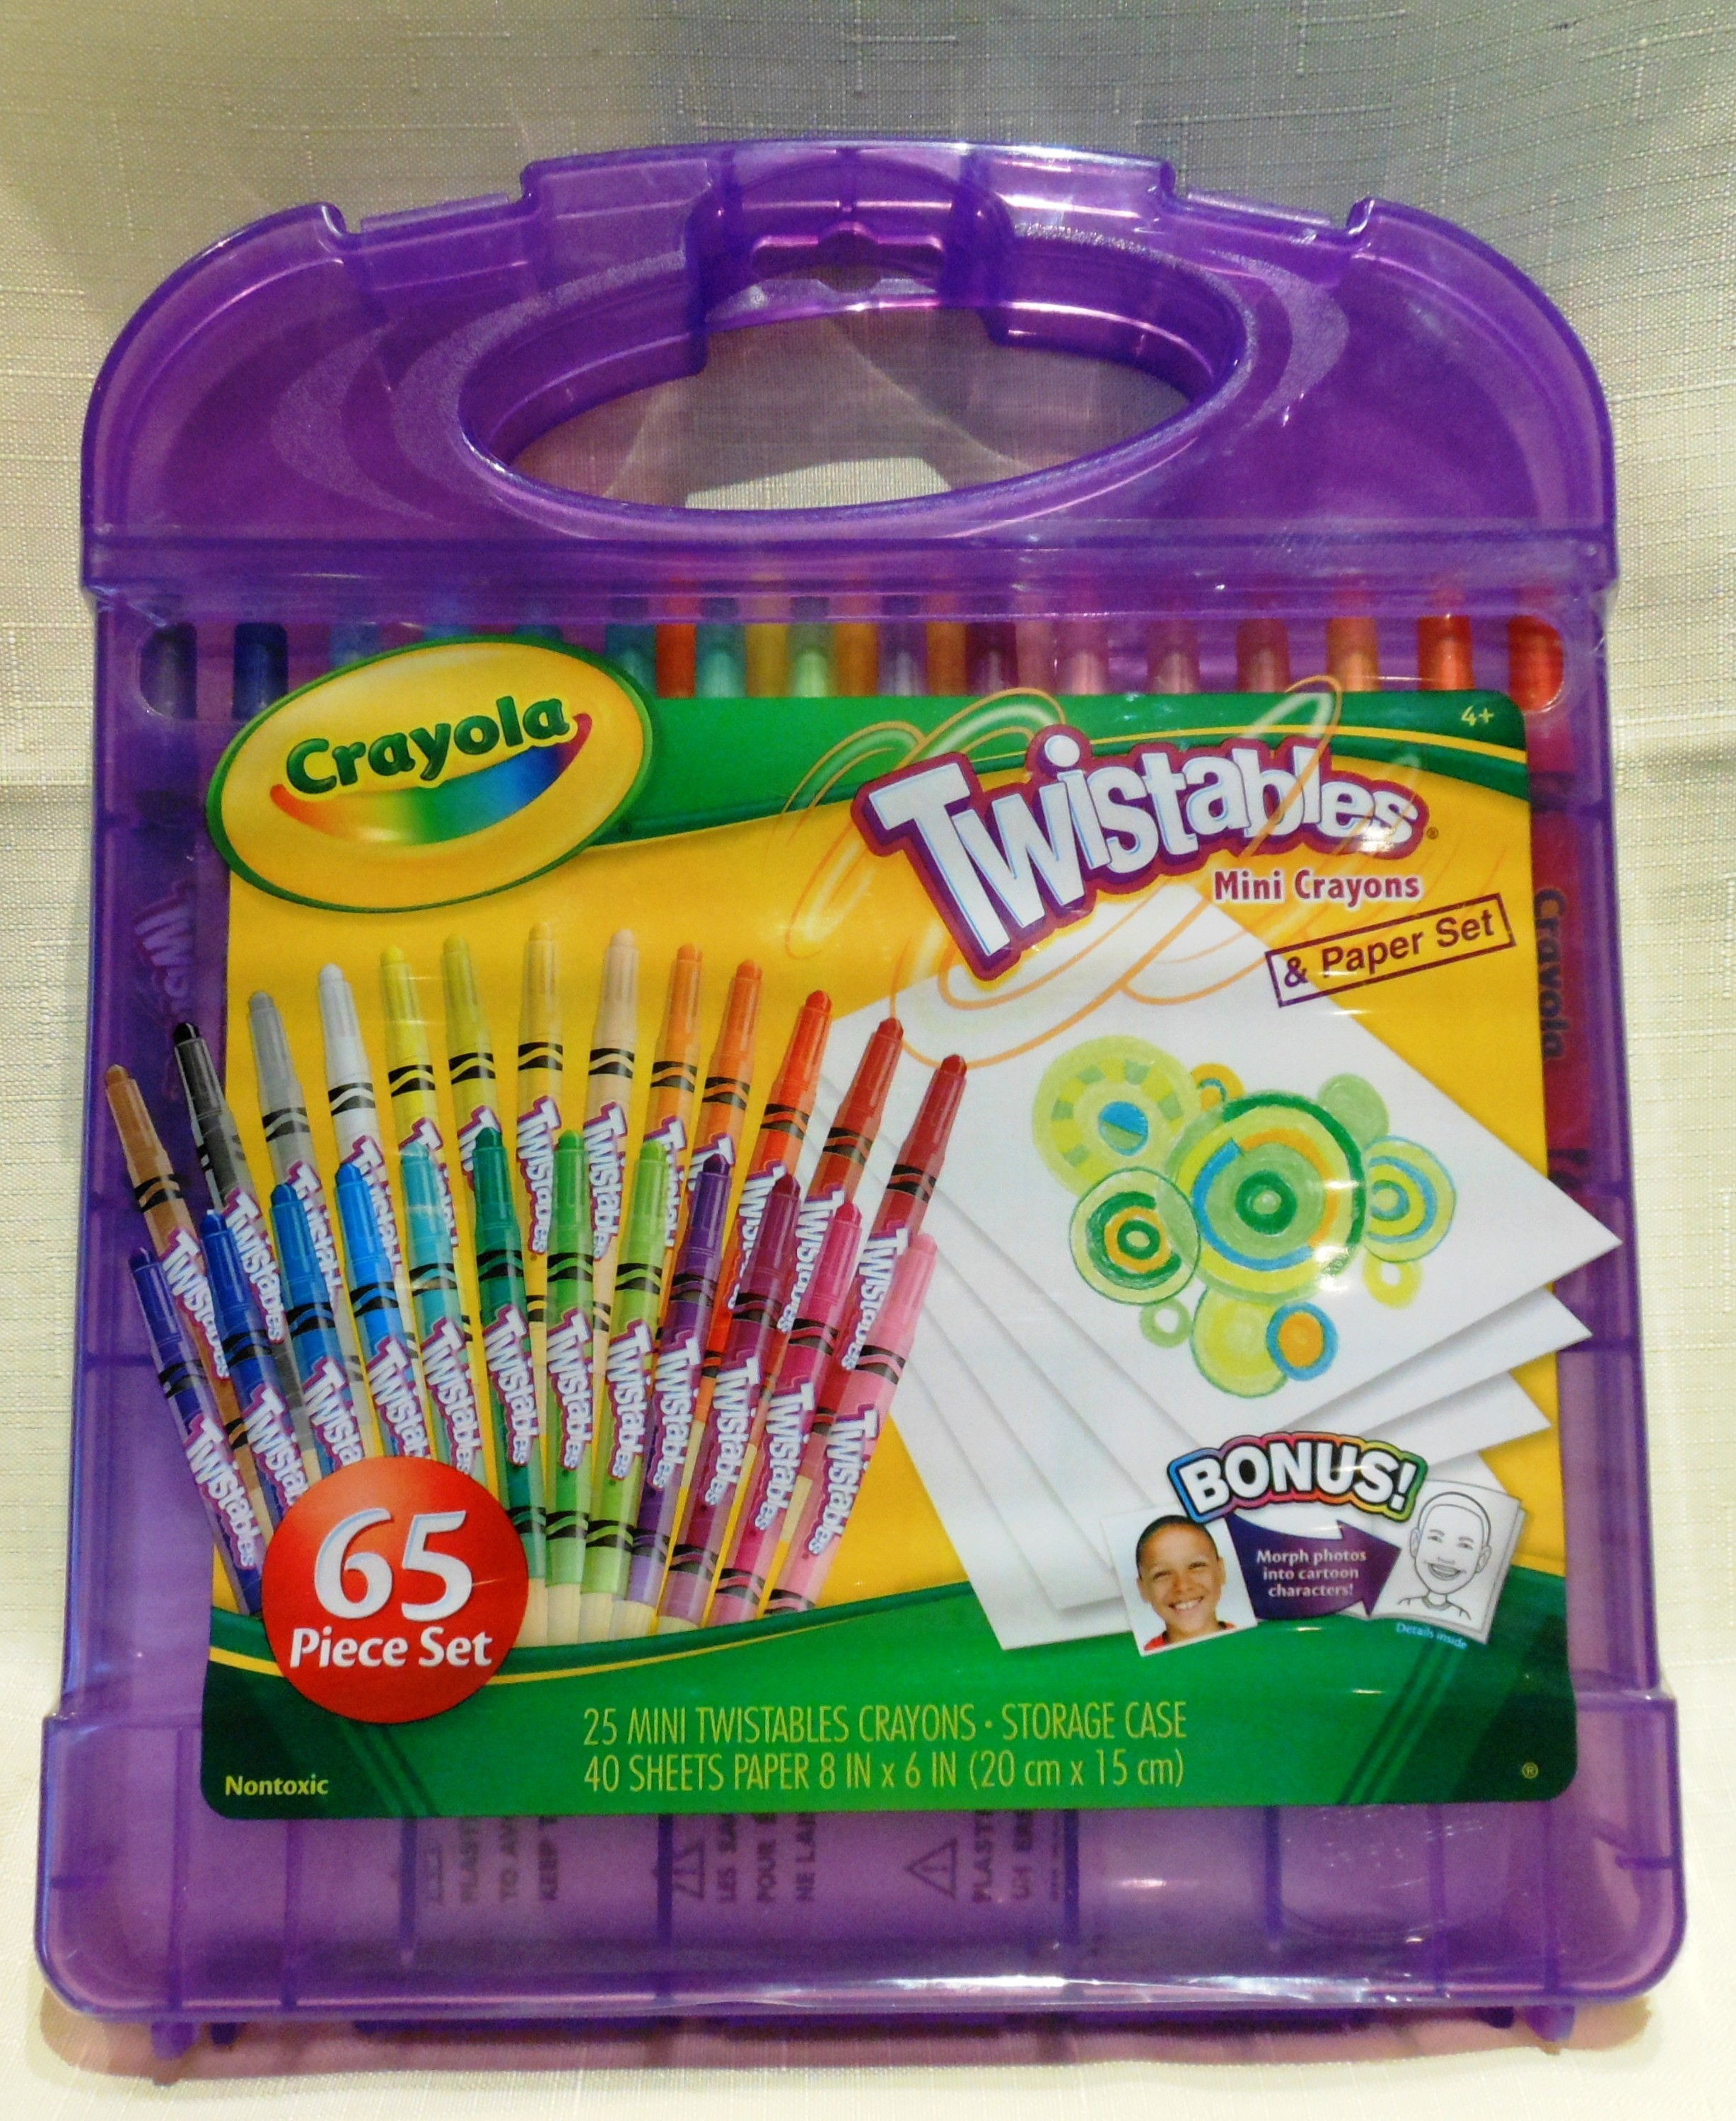 Crayola Mini Twistable Crayons and Paper Set – Perfectly Pennsylvania